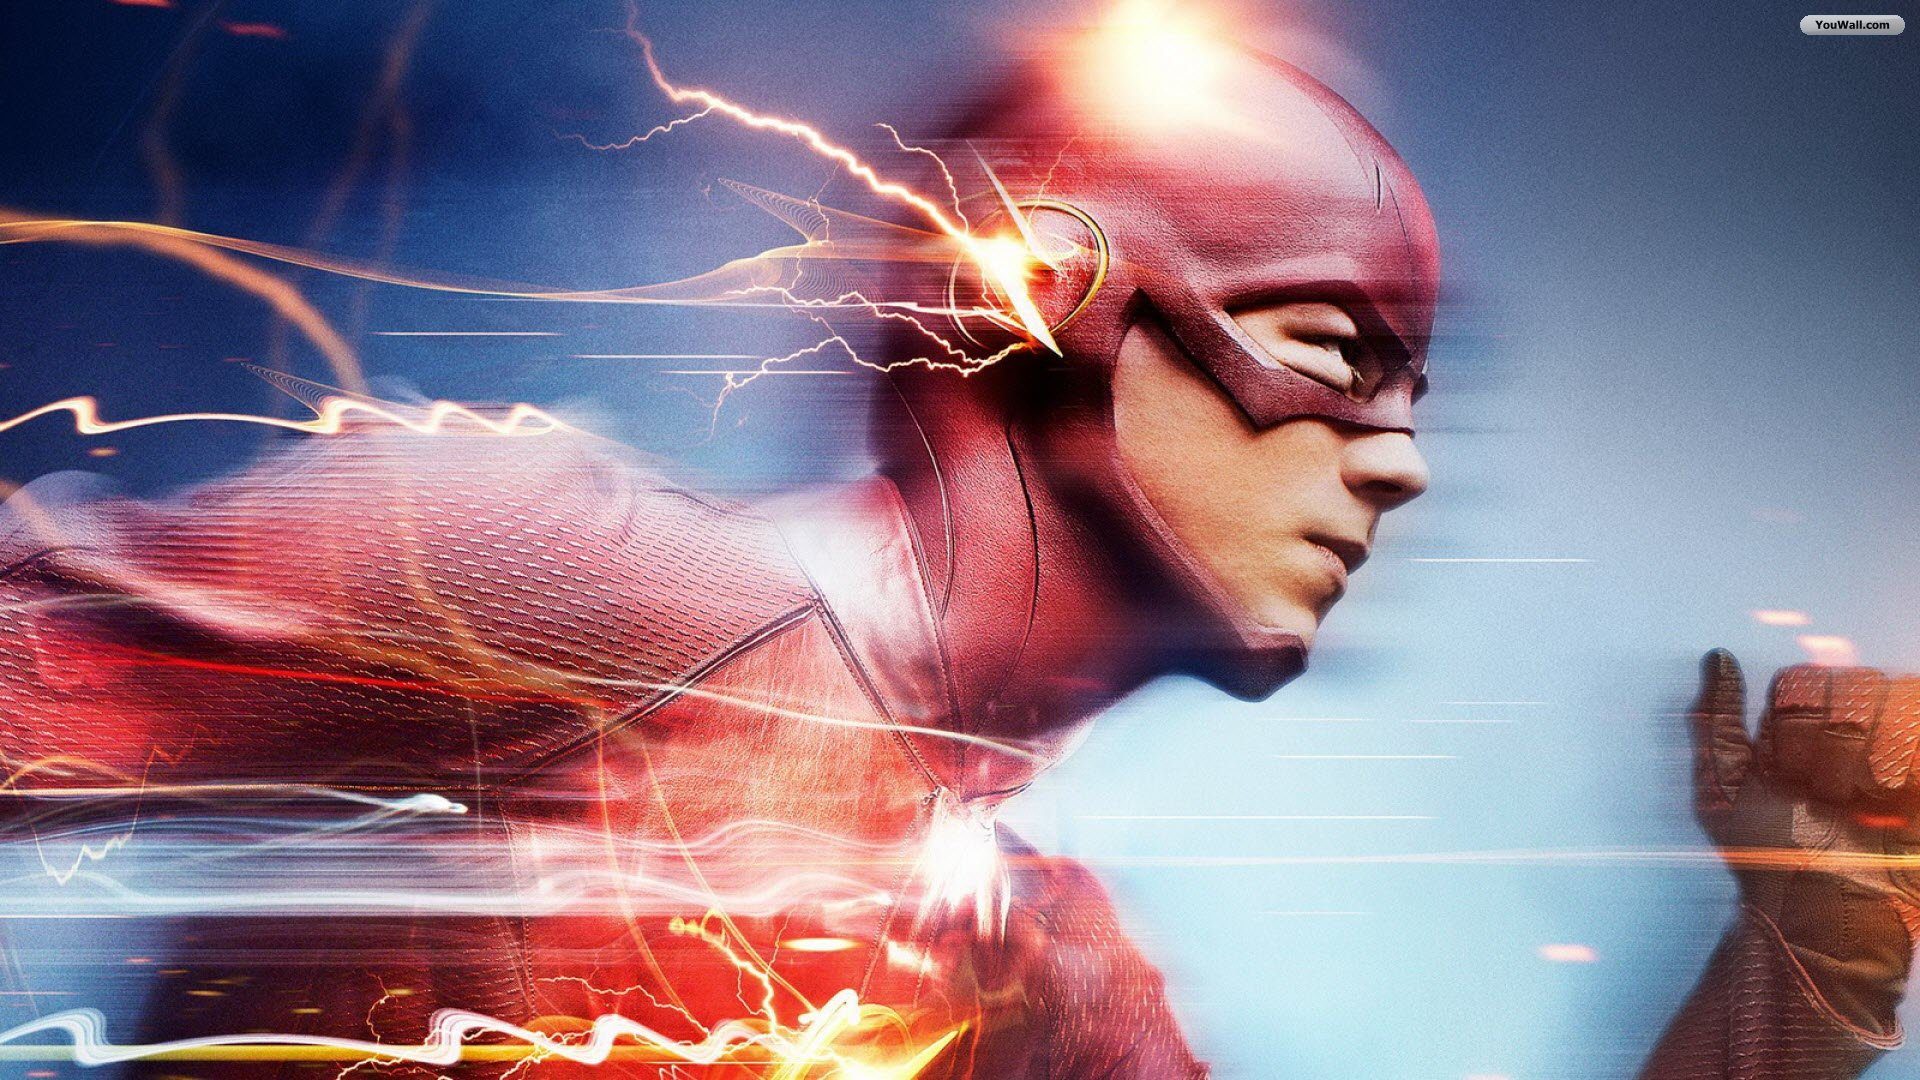 YouWall   The Flash Wallpaper   wallpaperwallpapersfree wallpaper 1920x1080